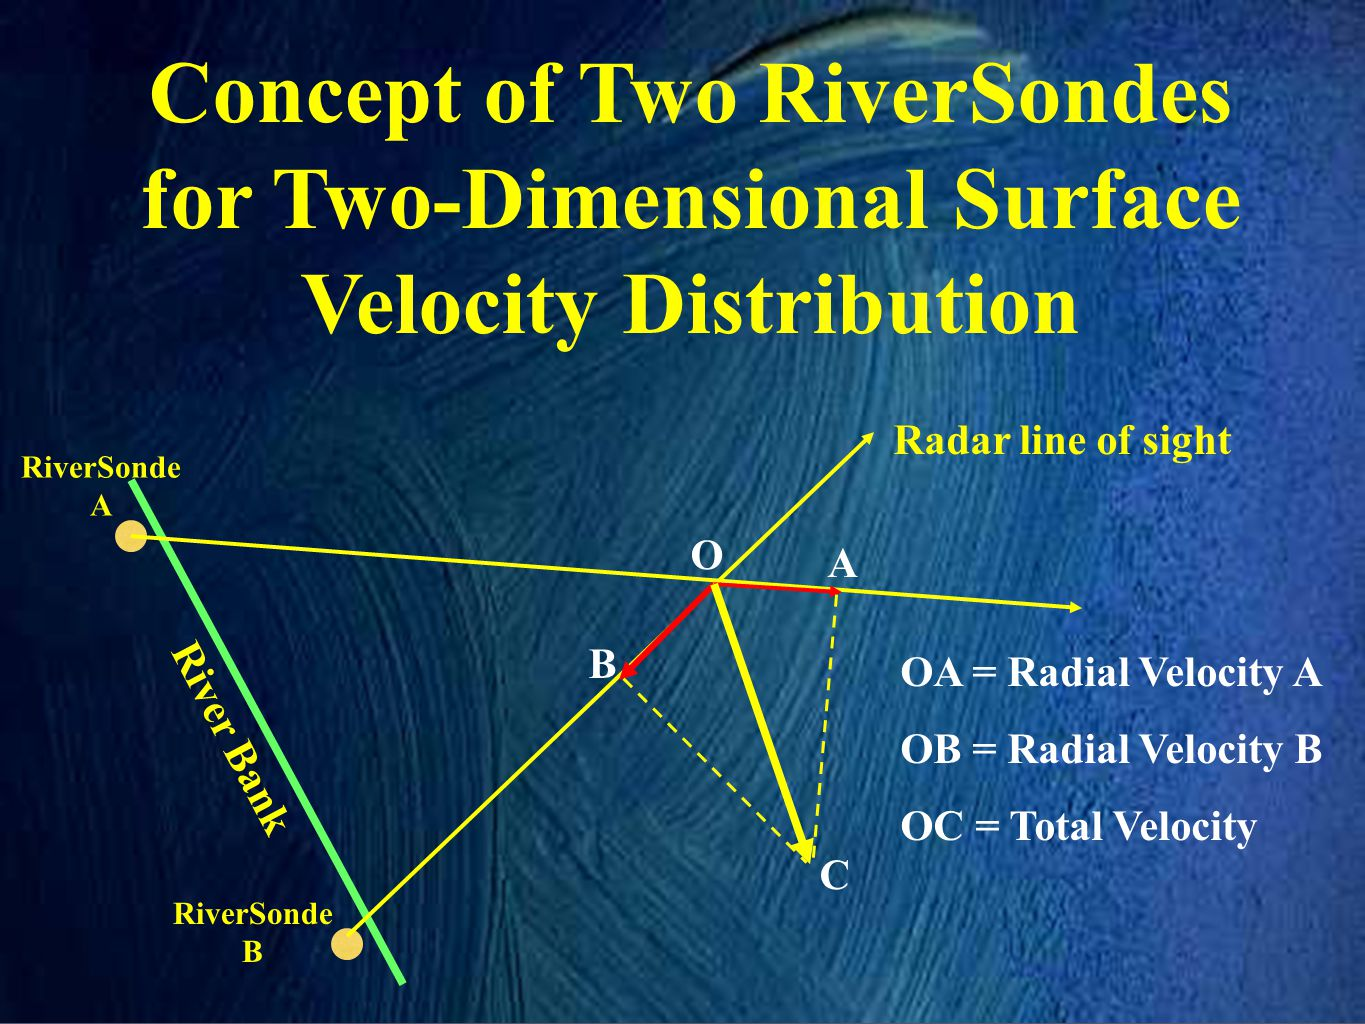 Concept of Two RiverSondes for Two-Dimensional Surface Velocity Distribution Radar line of sight RiverSonde A RiverSonde B O B A C River Bank OA = Rad